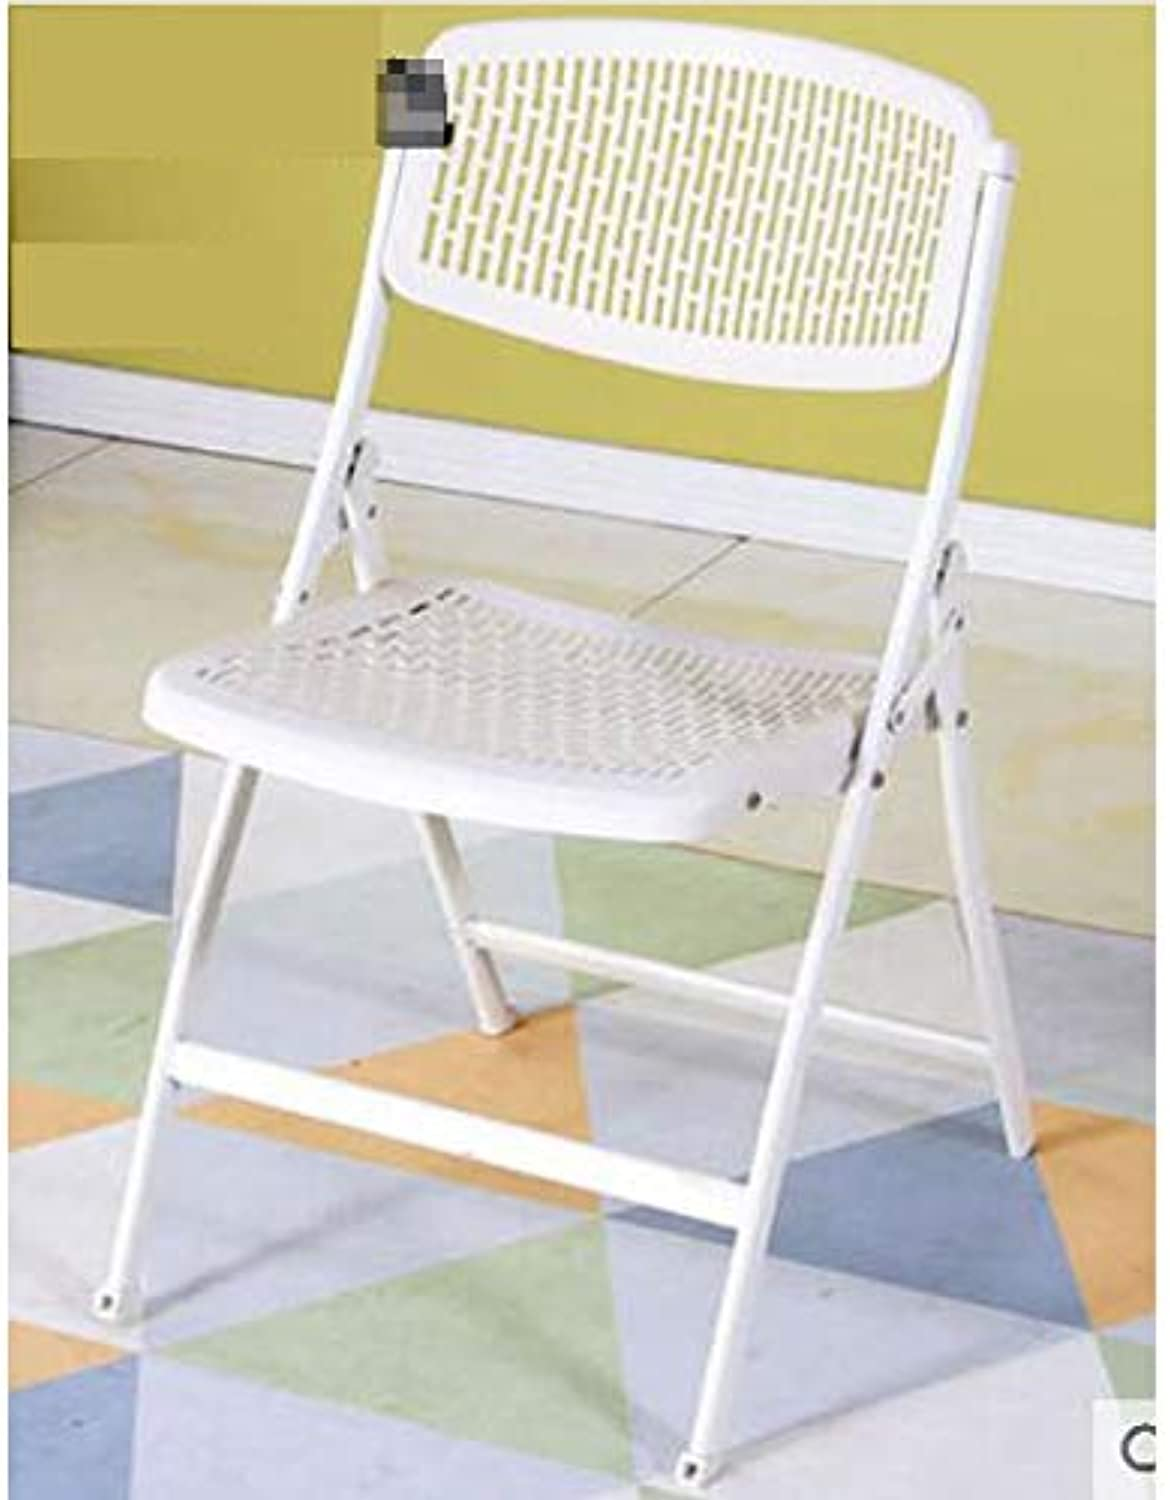 QYSZYG Household Folding Chair, Fashion Chair, Portable shoes Bench, Breathable Computer Desk Stool Stool (color   White)